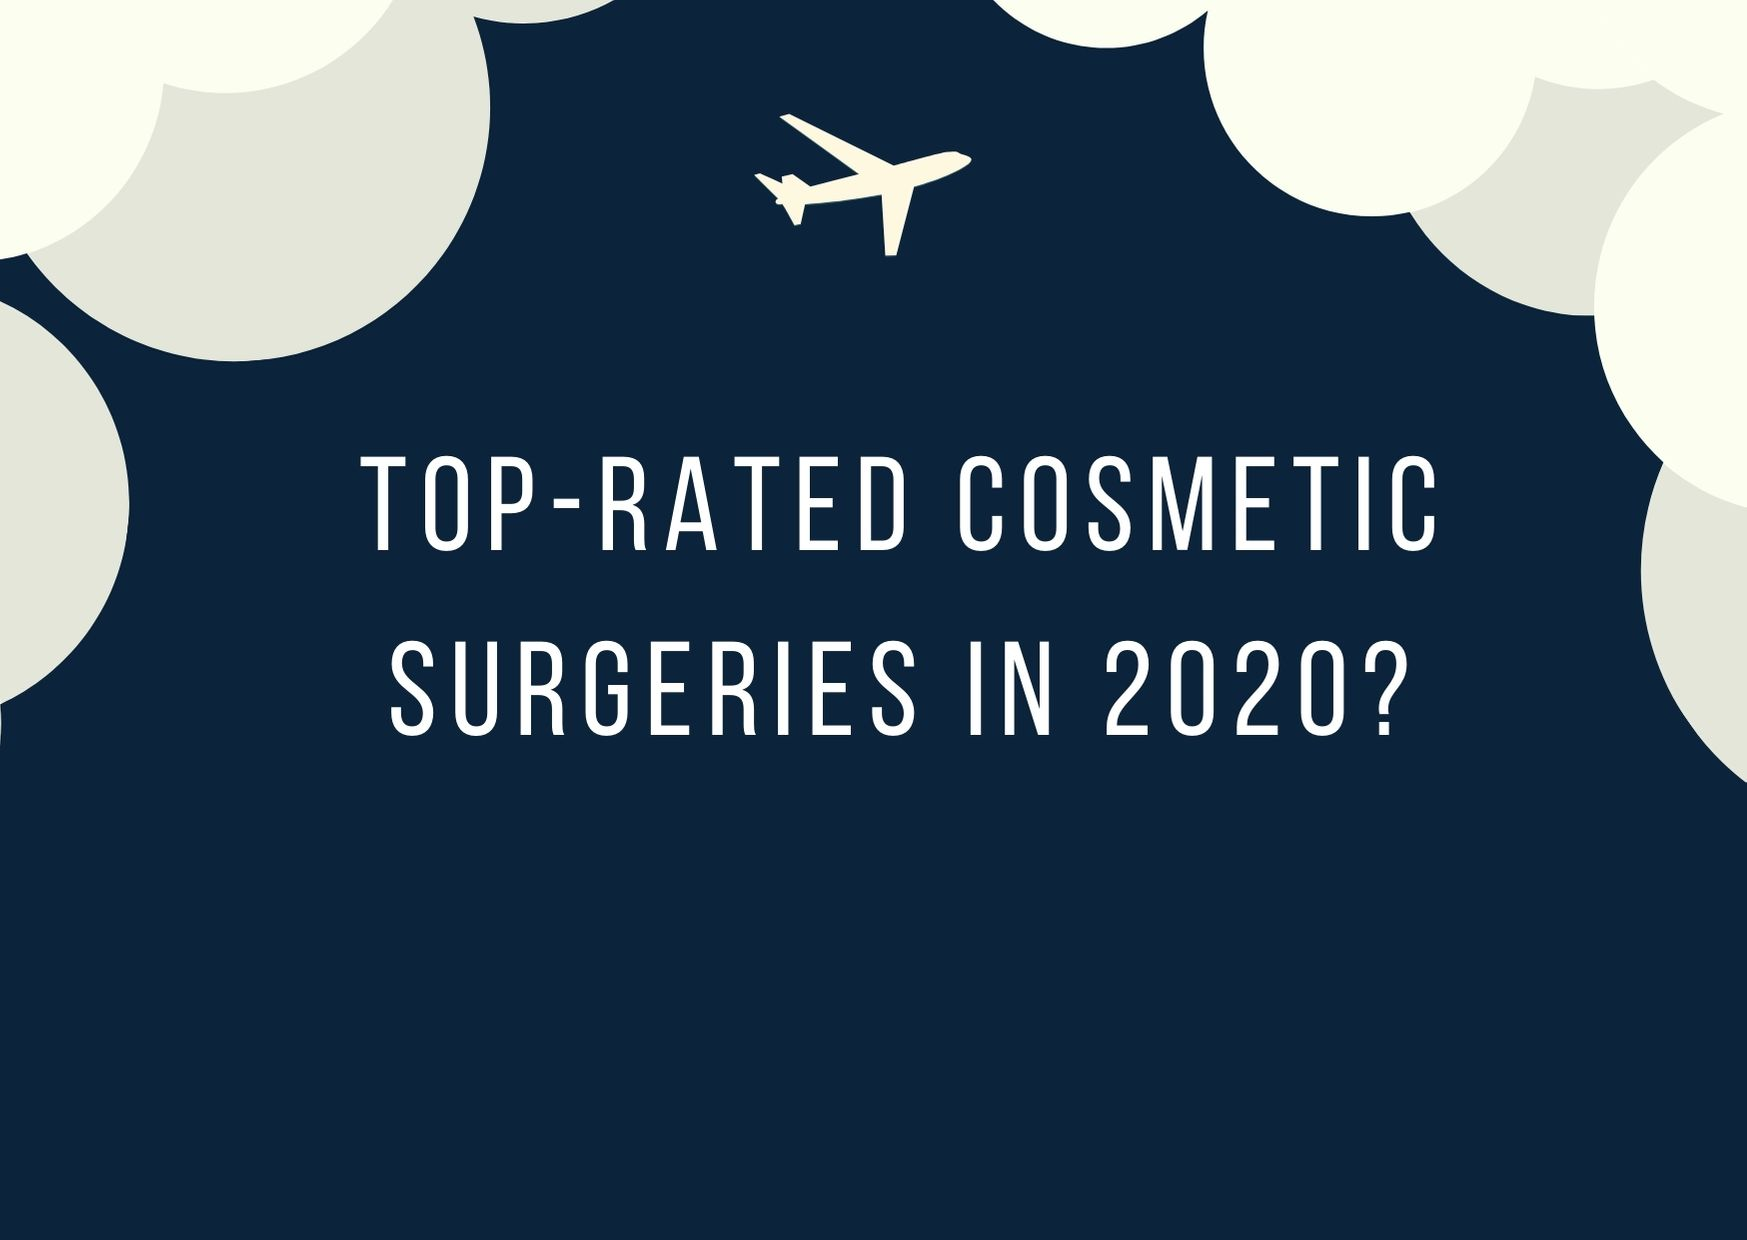 Top-Rated Cosmetic Surgeries in 2020?